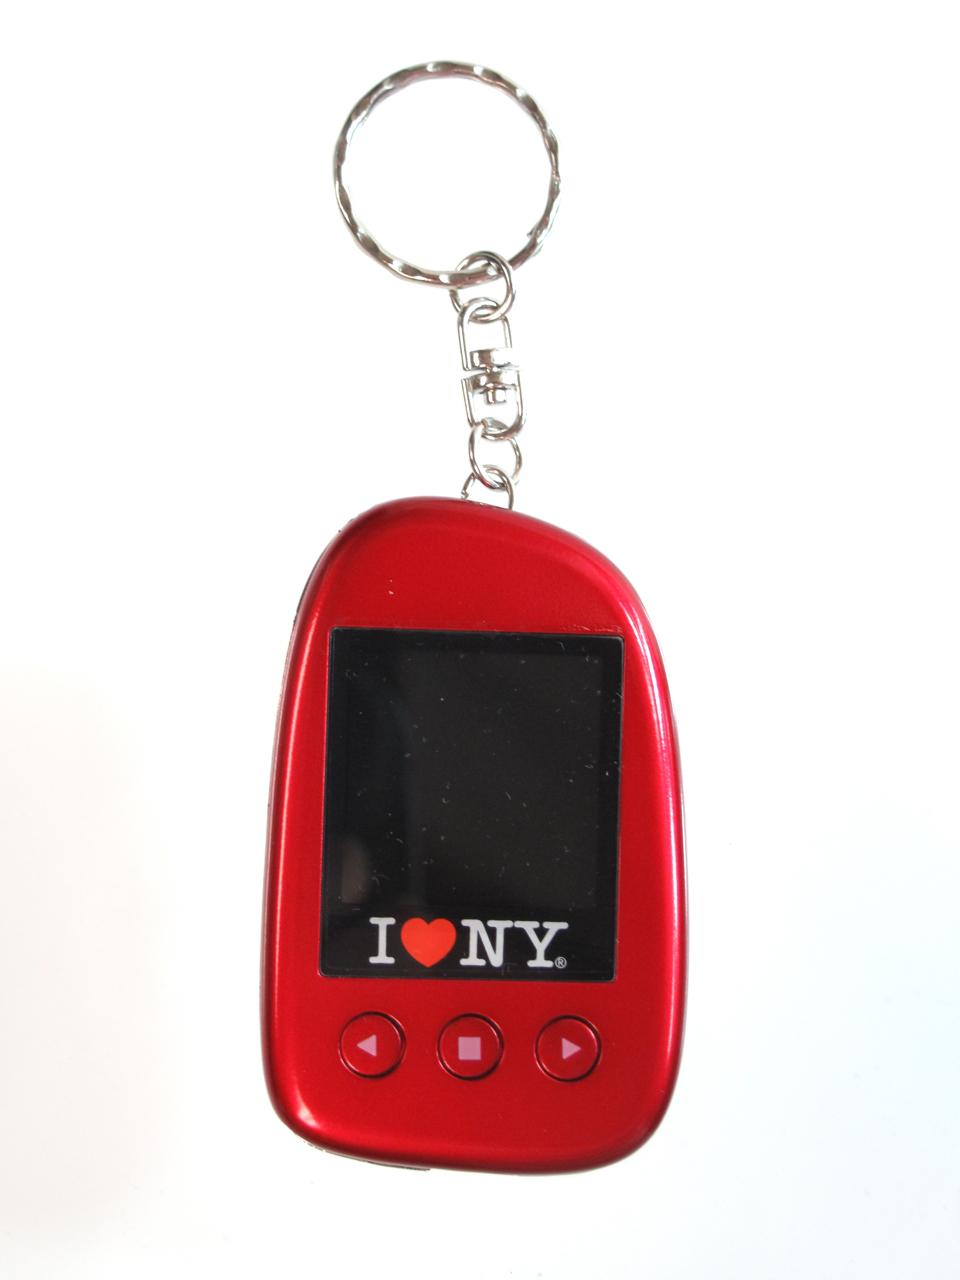 "I Love NY DPV151 1.5"" Digital Photo Keychain Hold up to 107 Photos - Red"